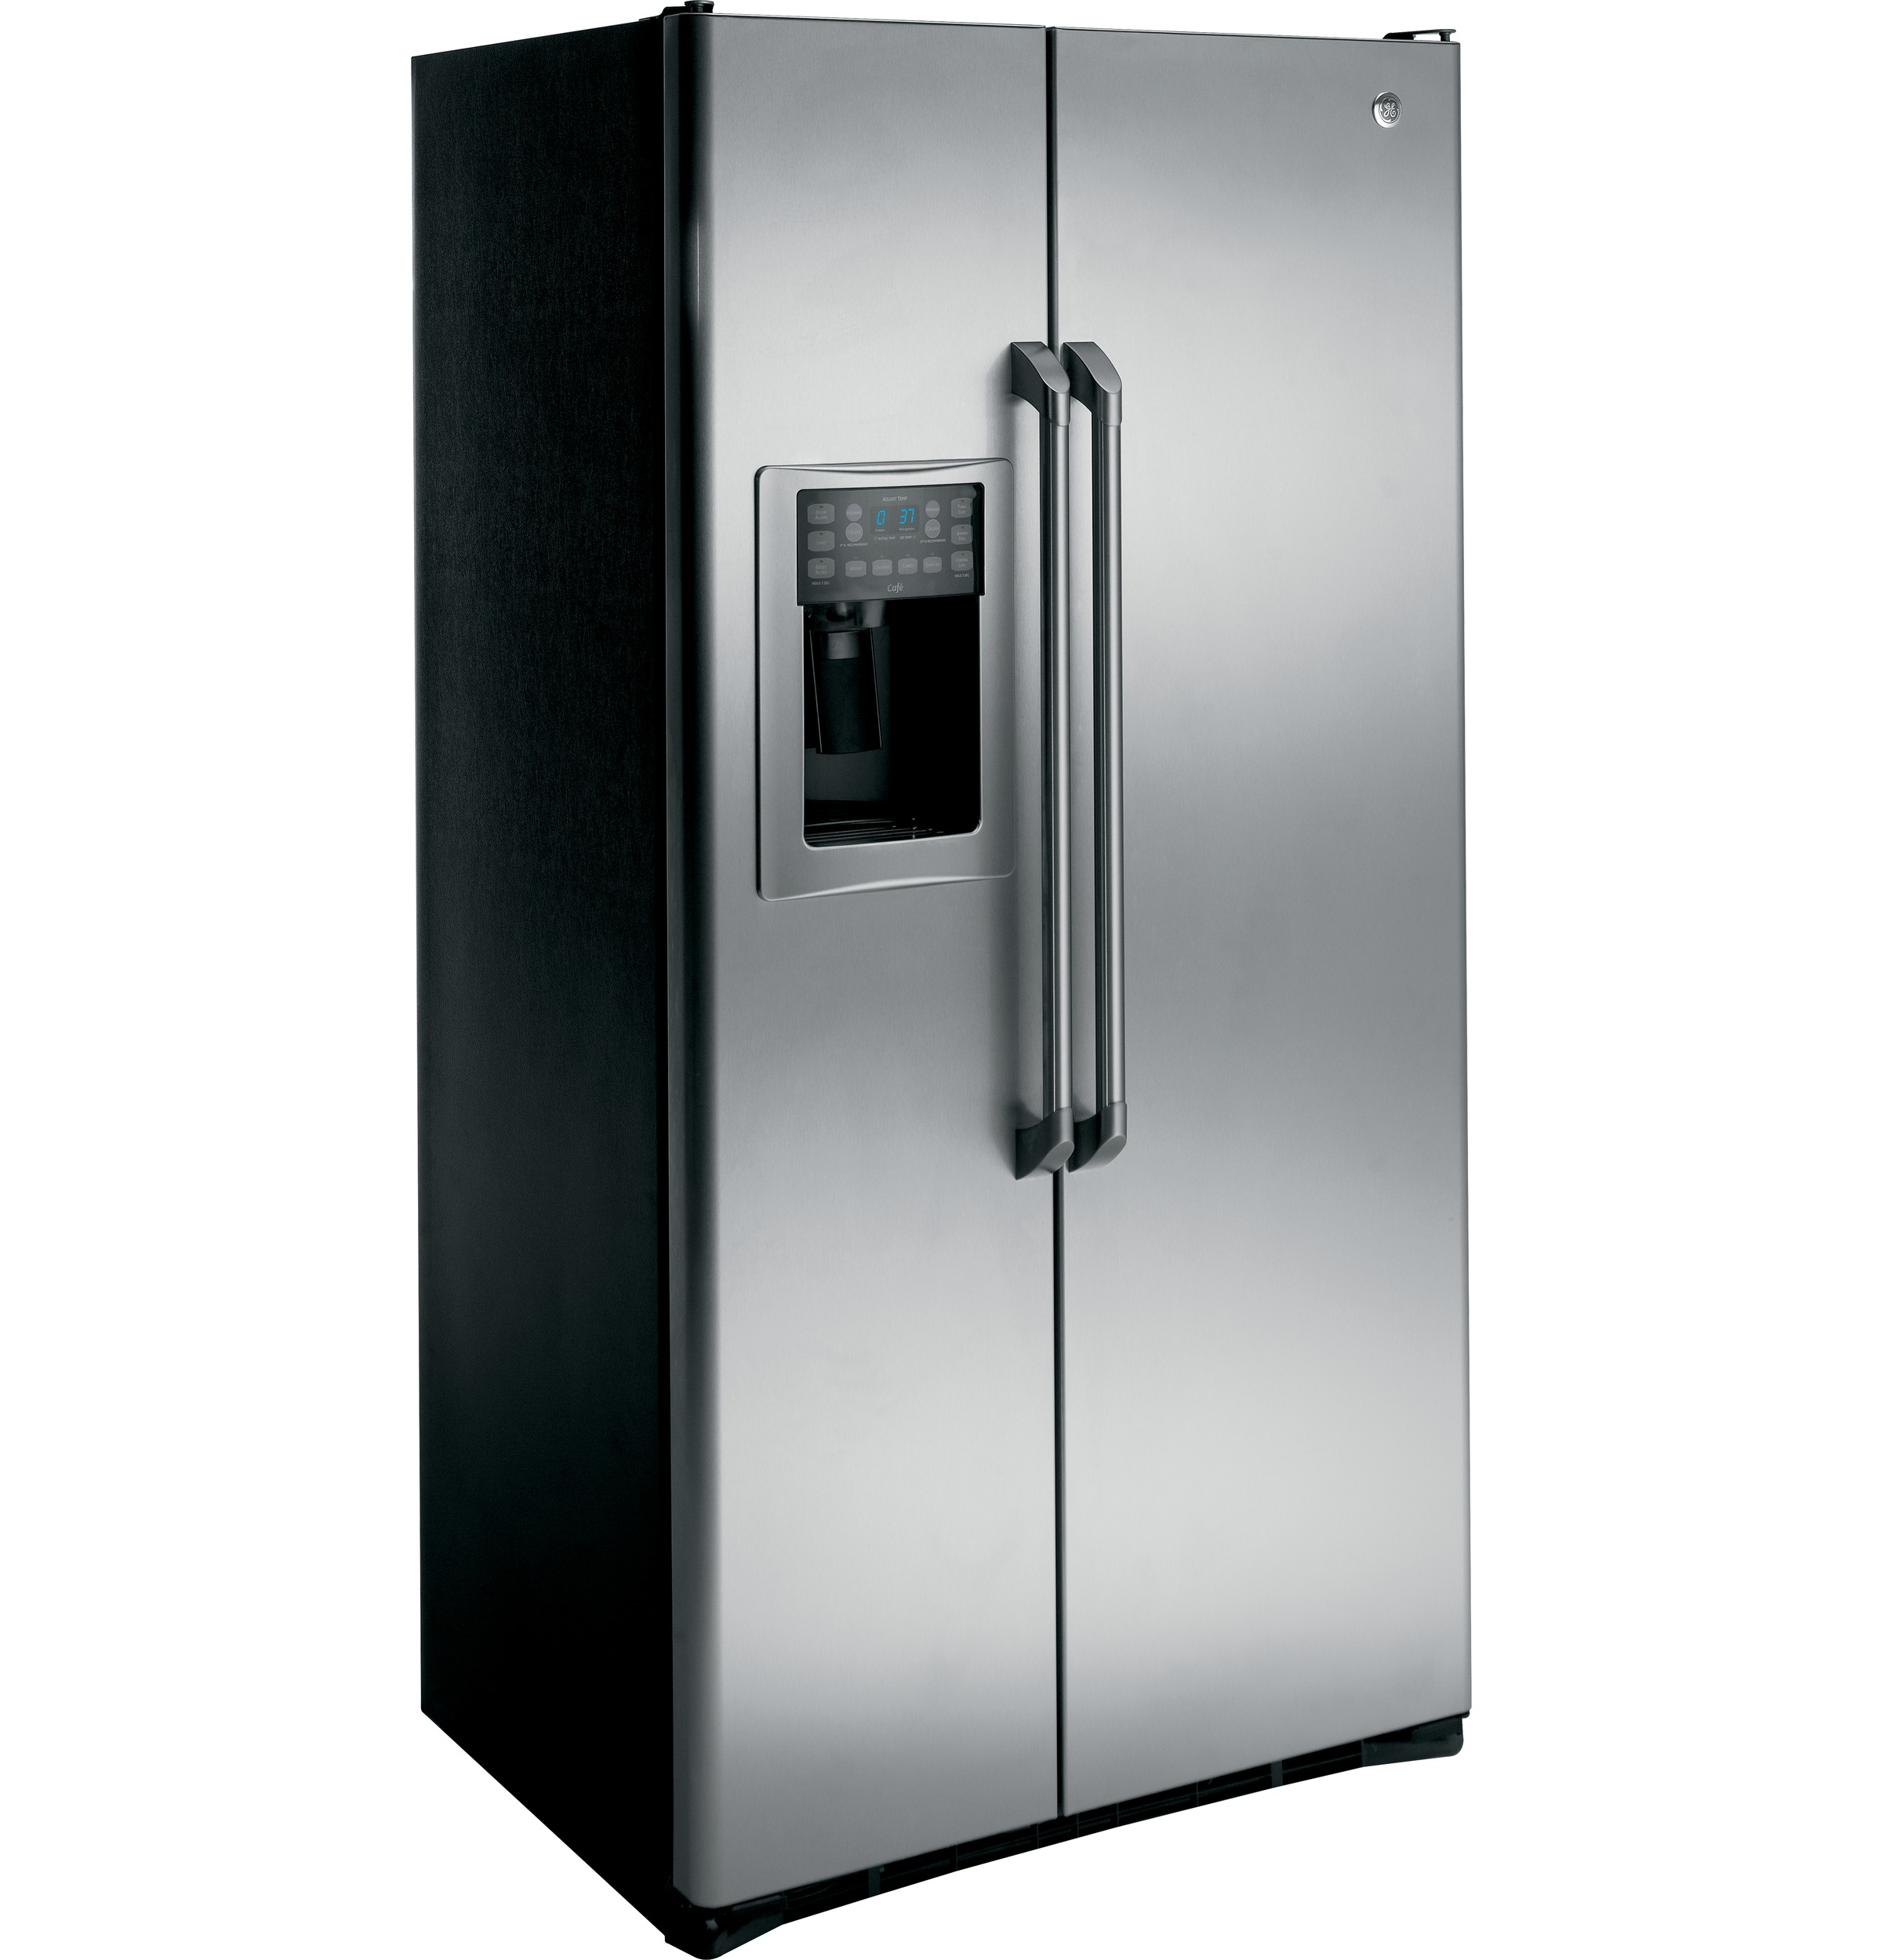 Ge 30 inch side by side white refrigerator - 1 Of 10